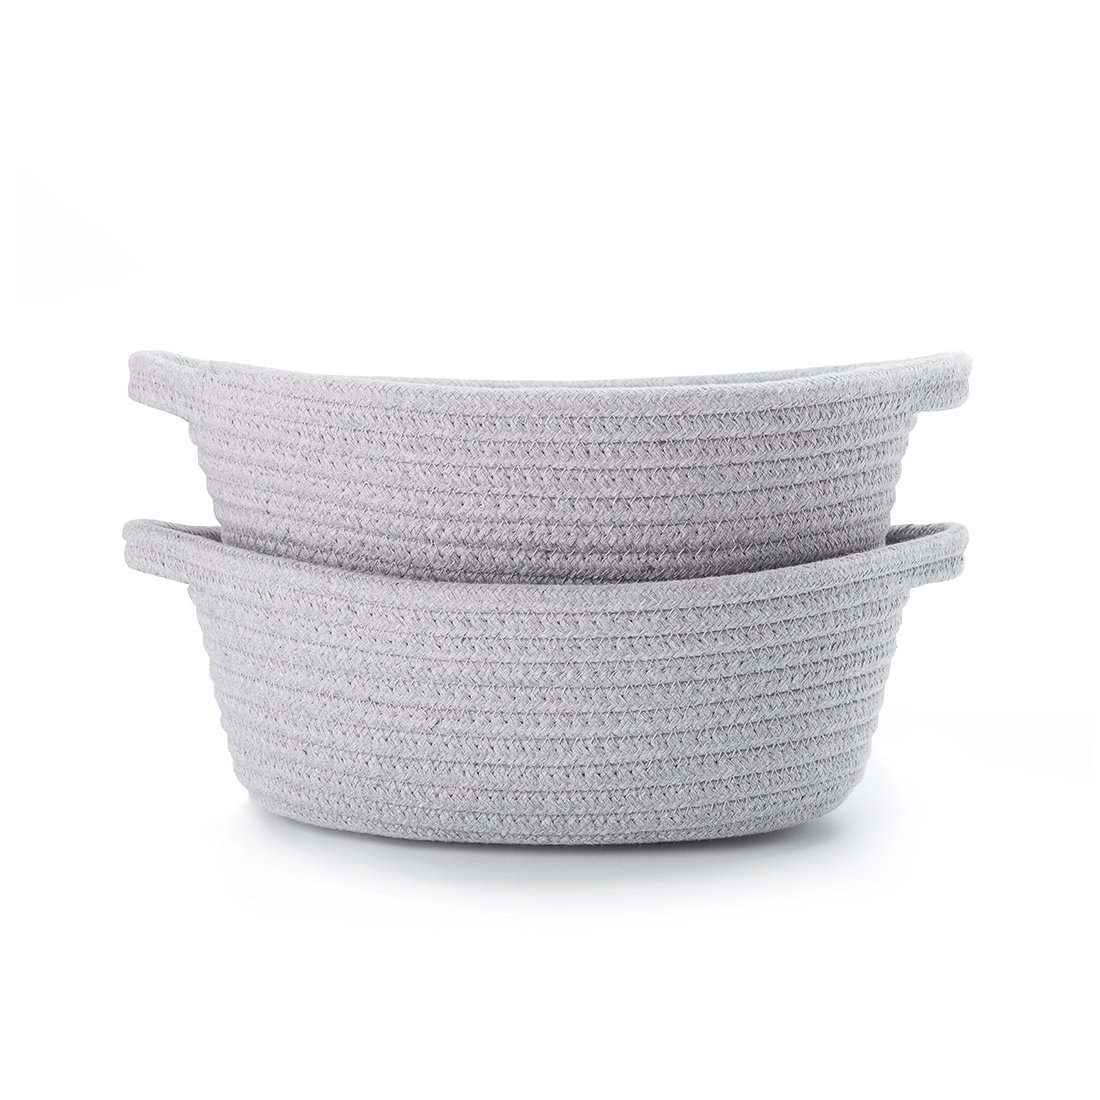 LoongBaby Cotton Rope Storage Basket Toy Chest Nesting Bins Candy Basket Handmade Box Approved by the FDA for Household Kids Toy Collection Grey-M